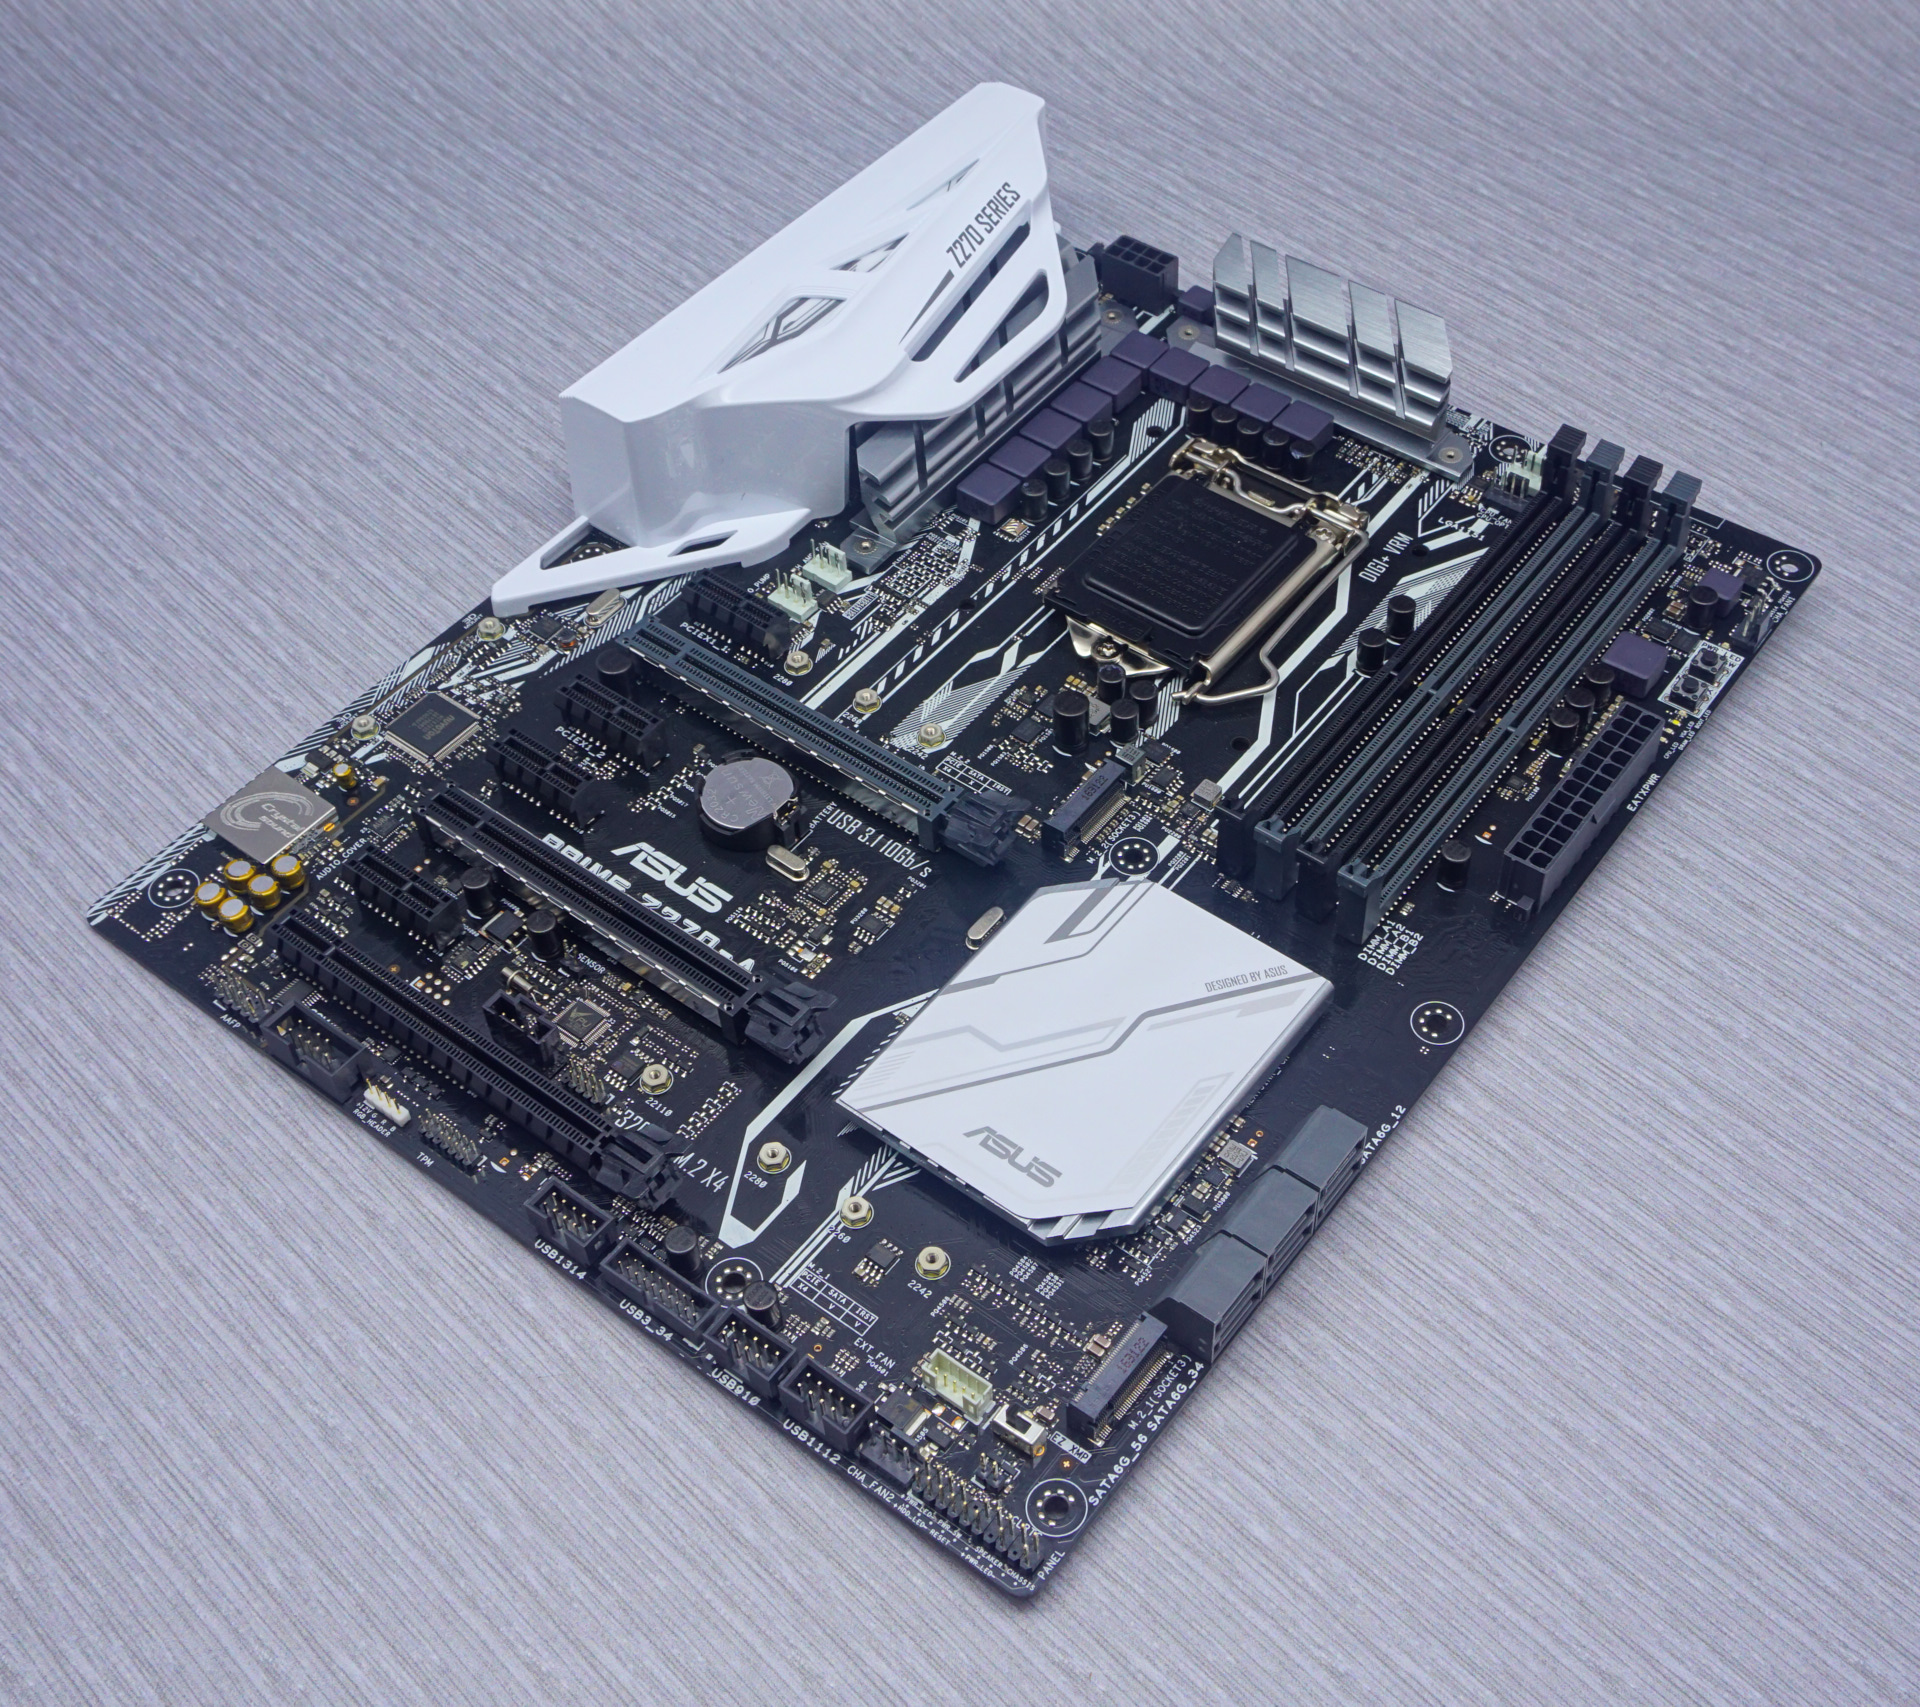 Asus Prime Z270-A Board Features, Visual Inspection - The